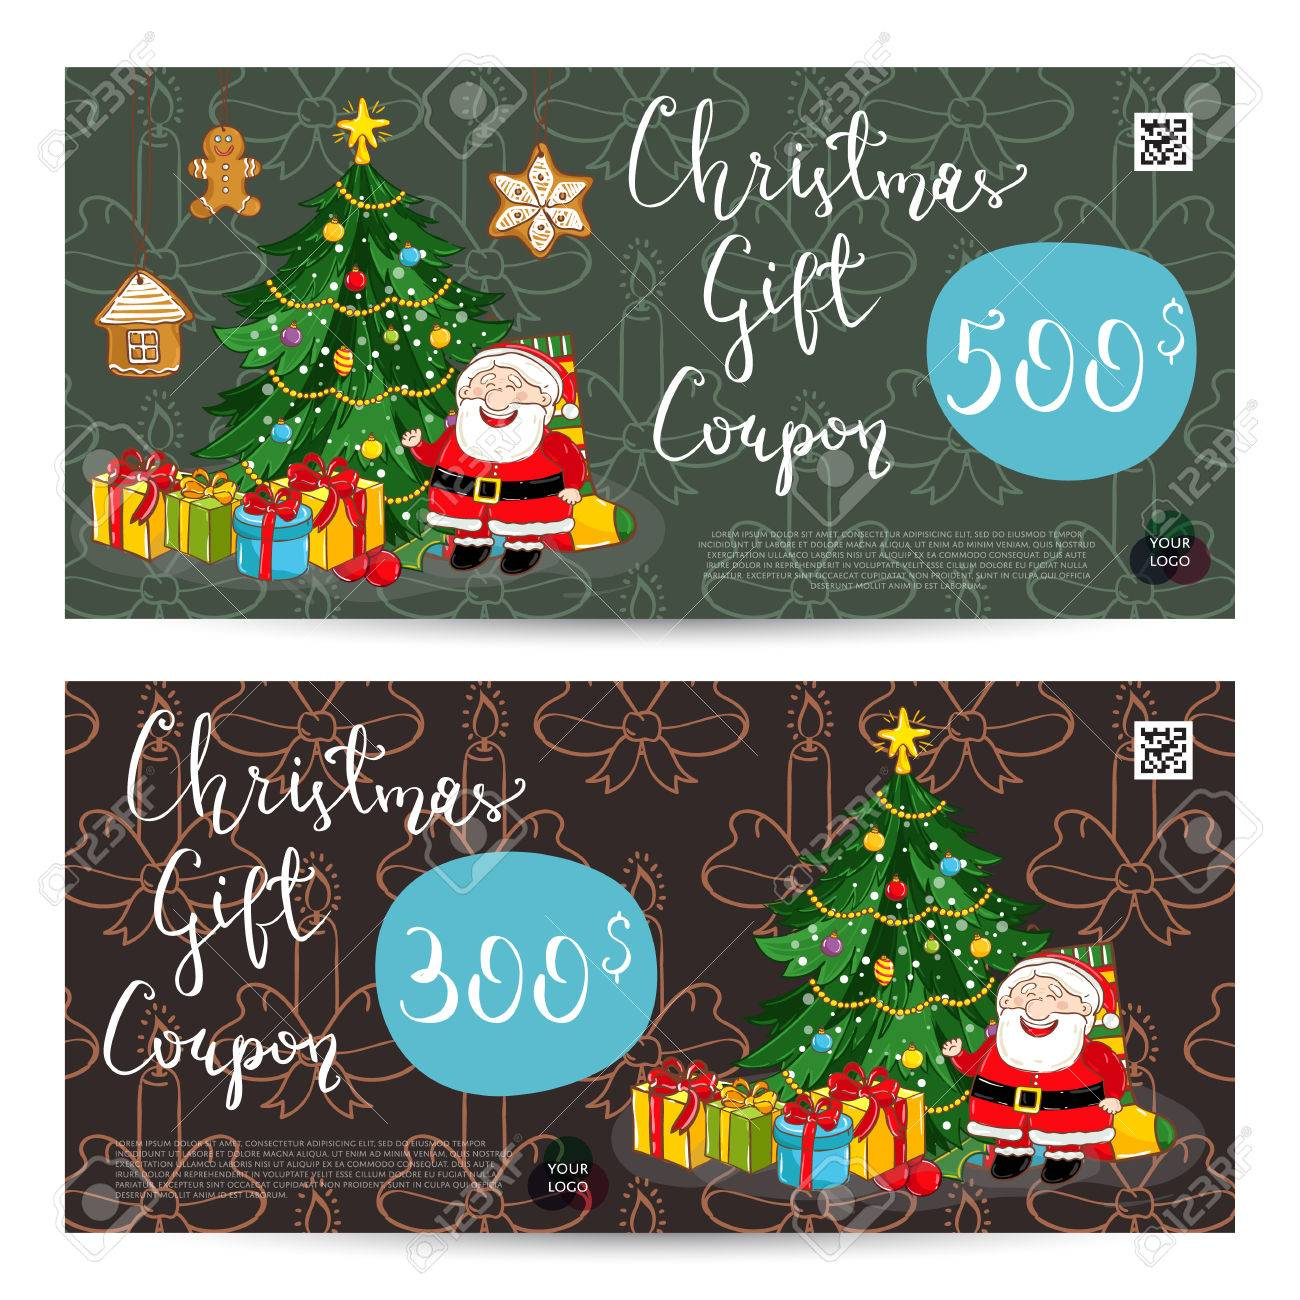 christmas gift voucher template gift coupon xmas attributes christmas gift voucher template gift coupon xmas attributes and prepaid sum santa